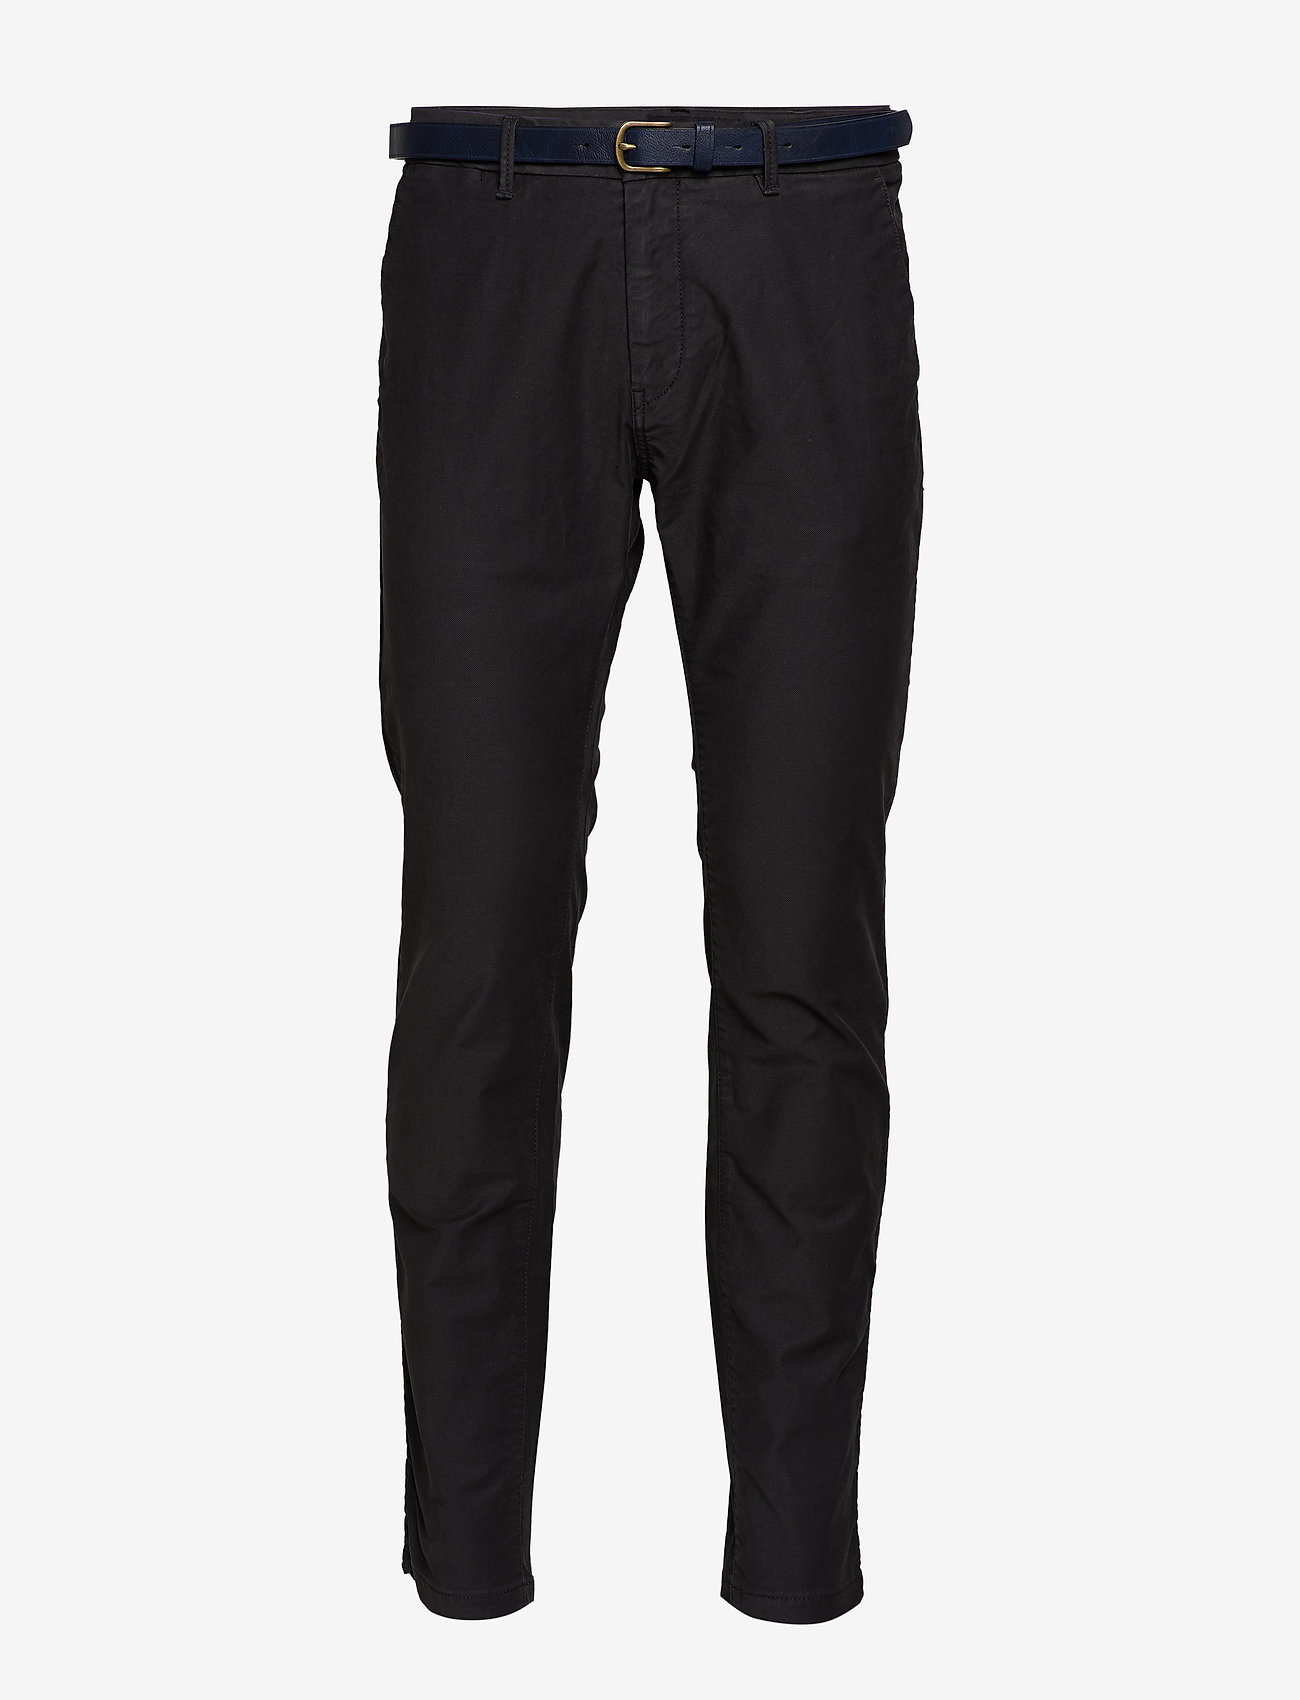 Scotch & Soda - STUART - Classic garment-dyed twill chino - charcoal - 0